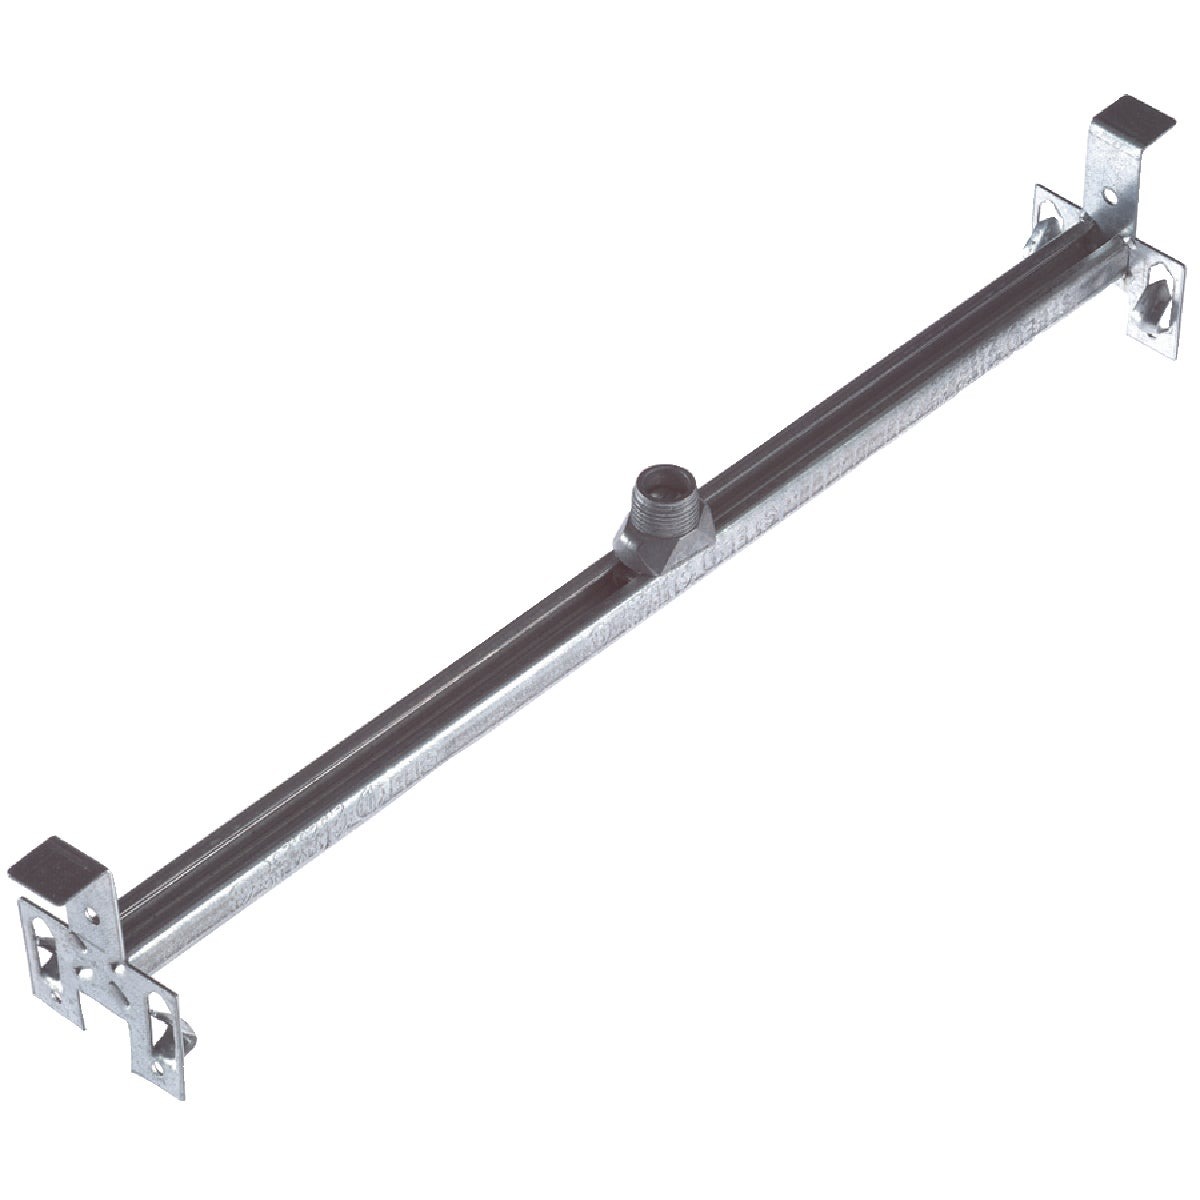 ADJUSTABLE HANGER BAR